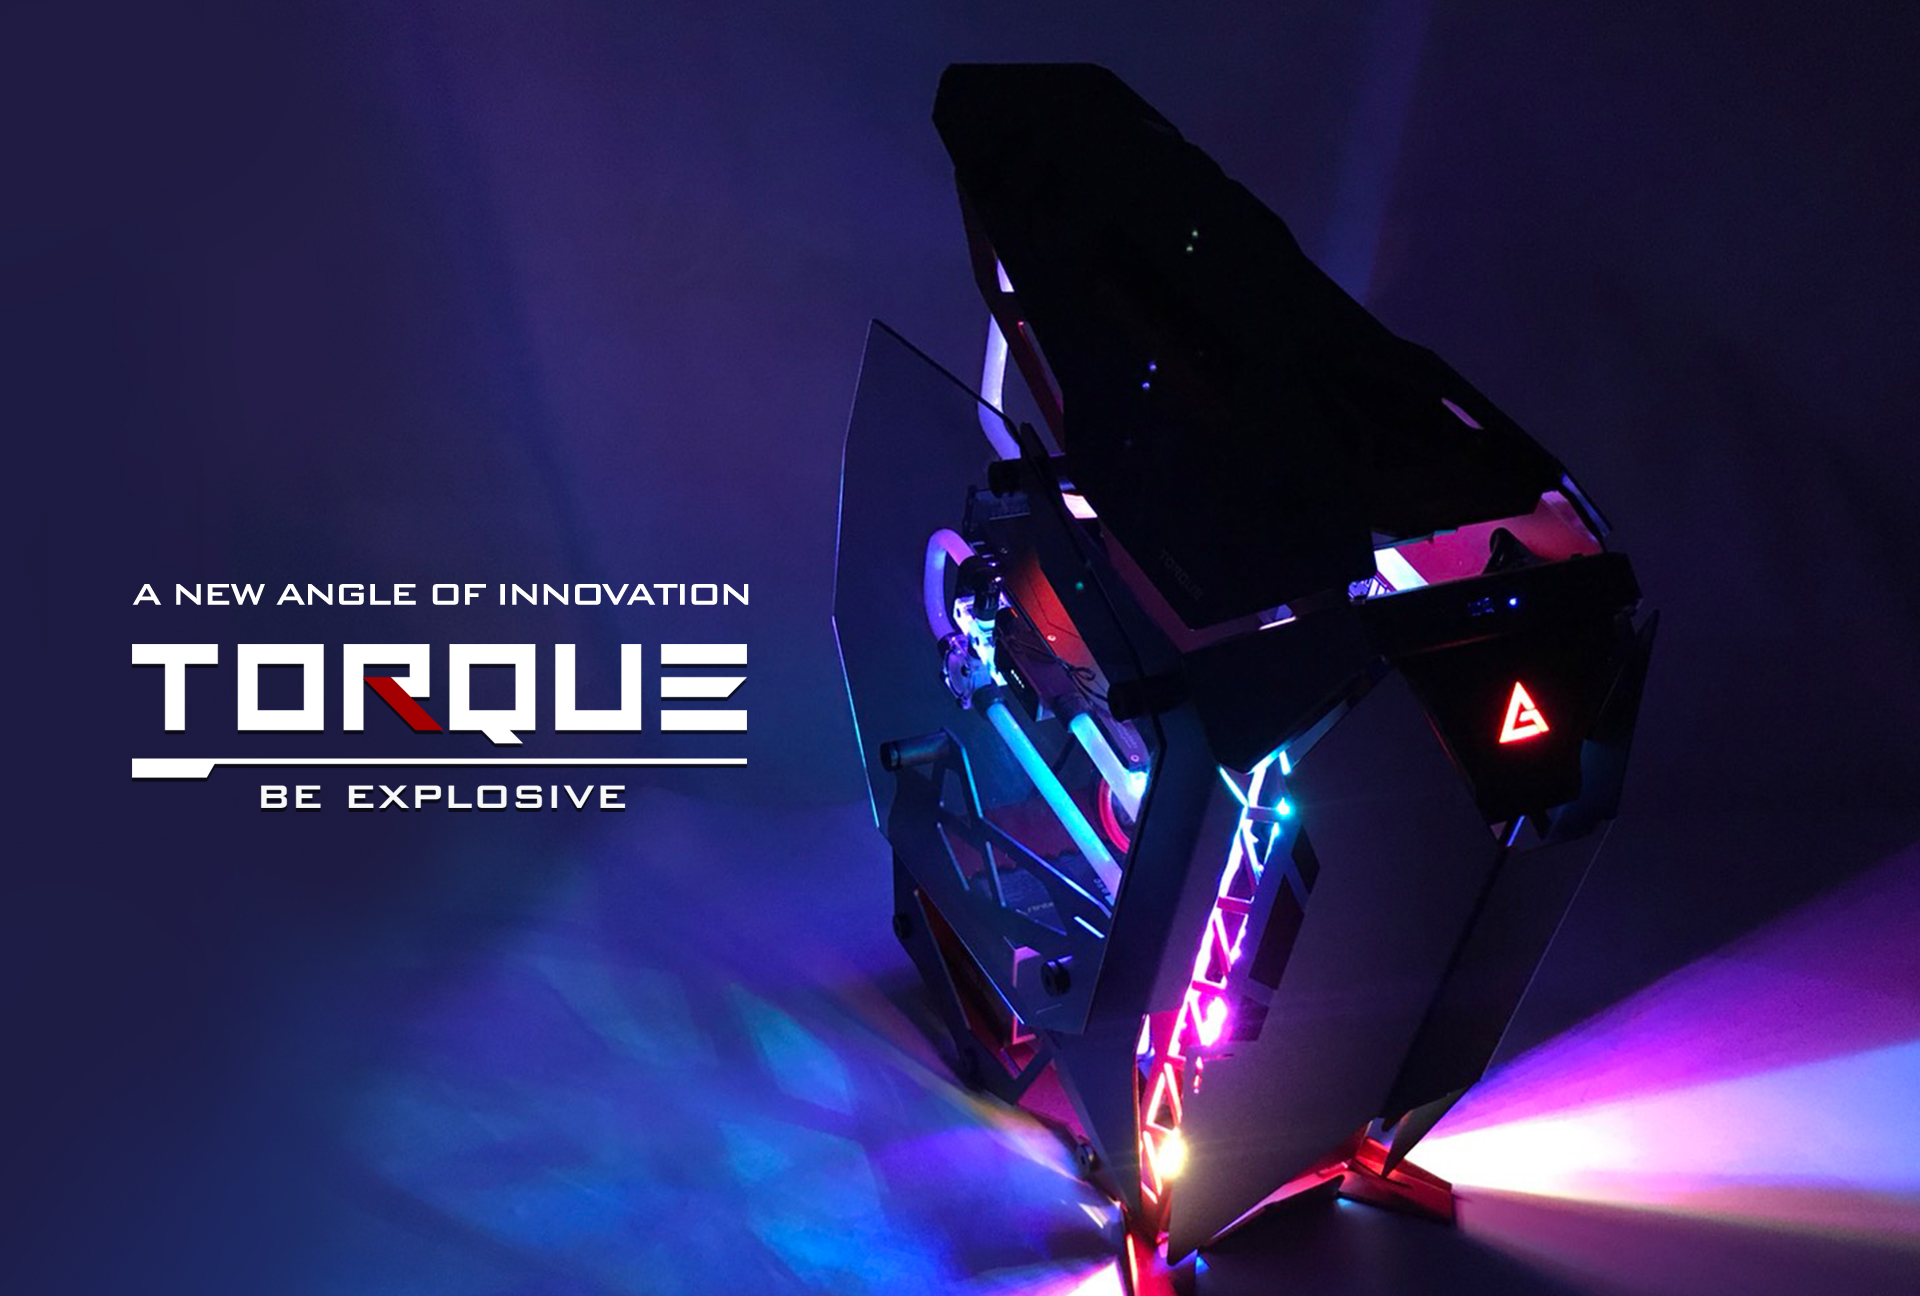 Antec TORQUE photo shoot showing off its lighting capability